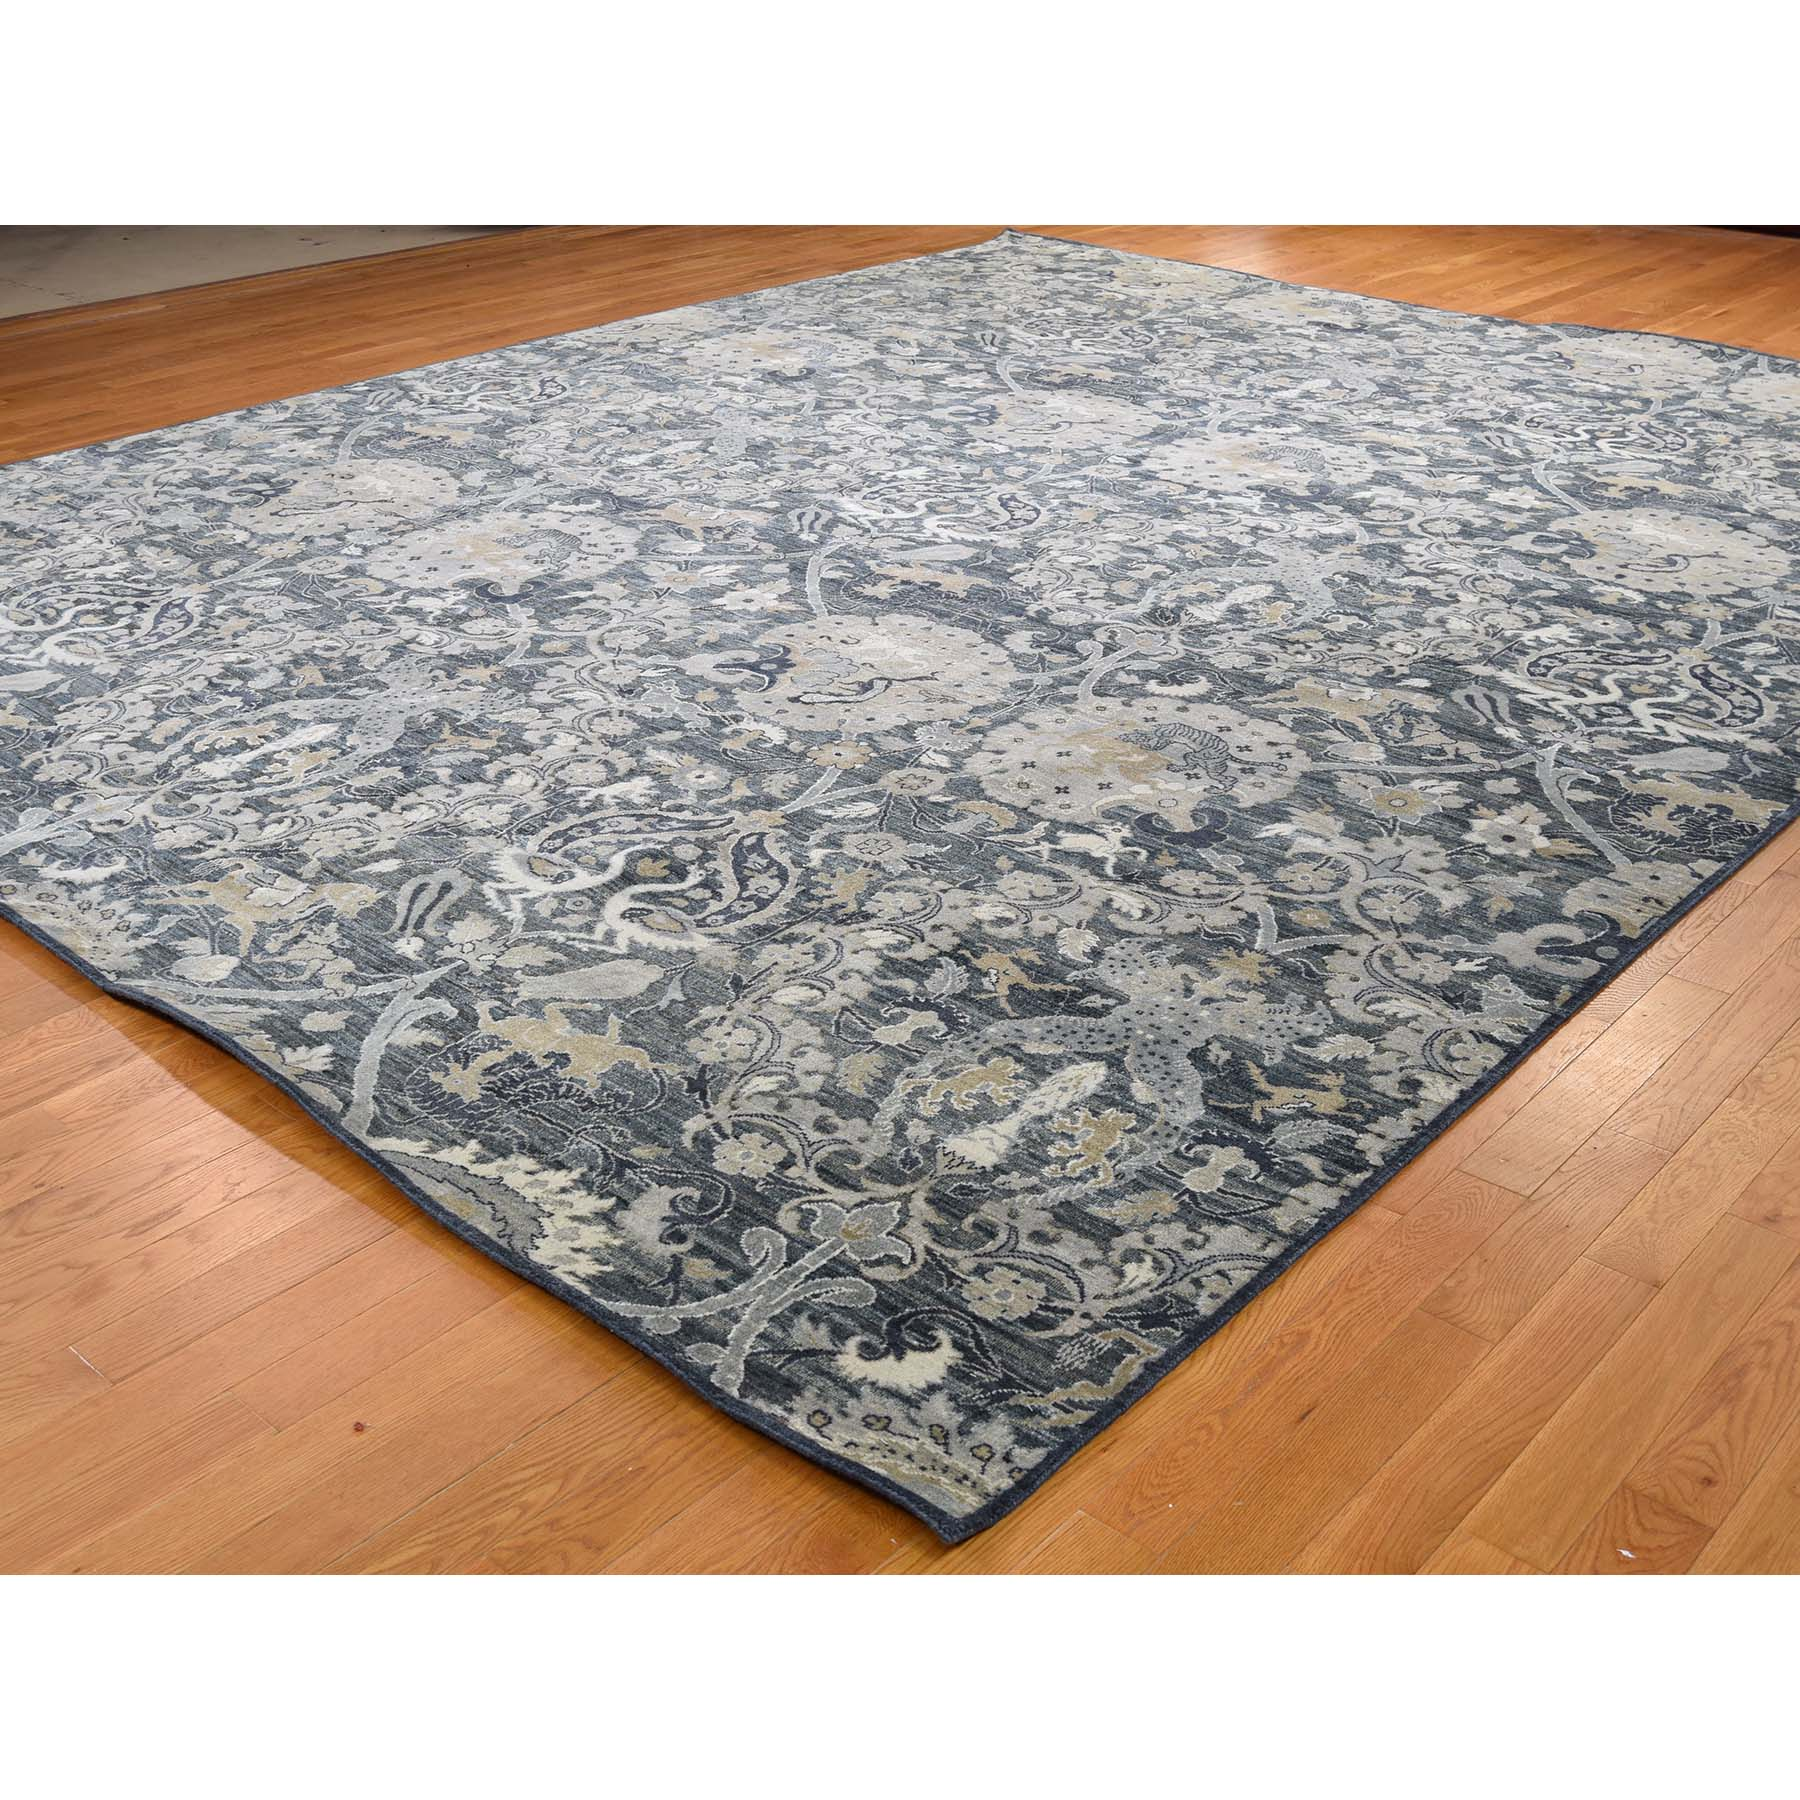 "12'2""x15'3"" Silk With Textured Wool Hunting Design Oversize Hand Woven Oriental Rug"